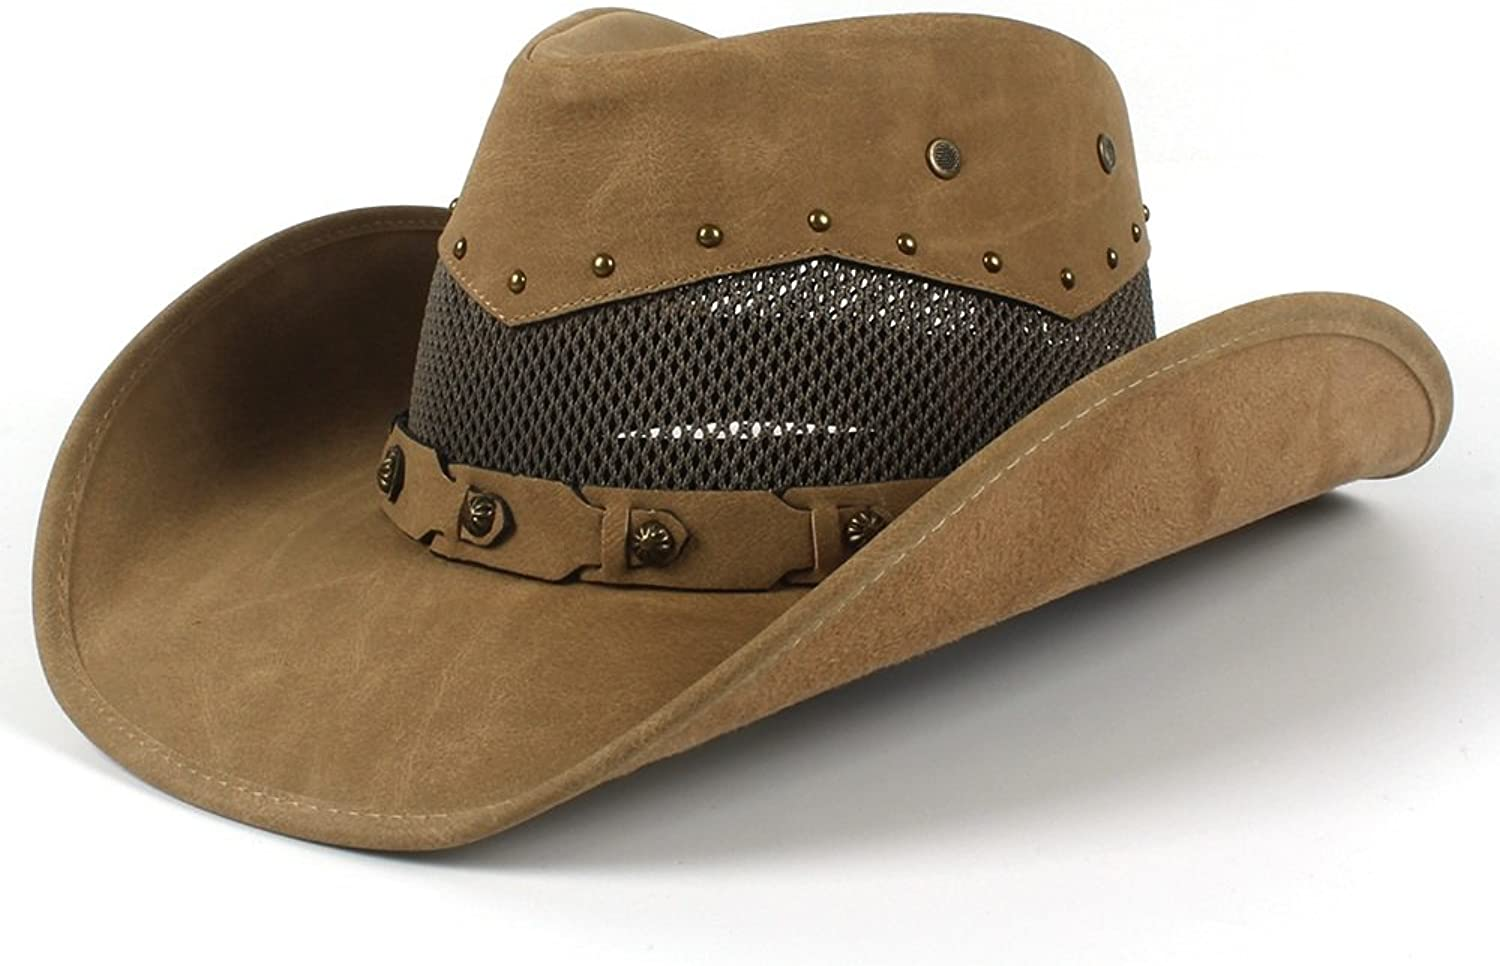 6ed47fb5 L.Z.H L.Z.H L.Z.H Men's Leather Cowboy Hat Summer With Mesh Dad Godfather  Hats 58-59CM 398400